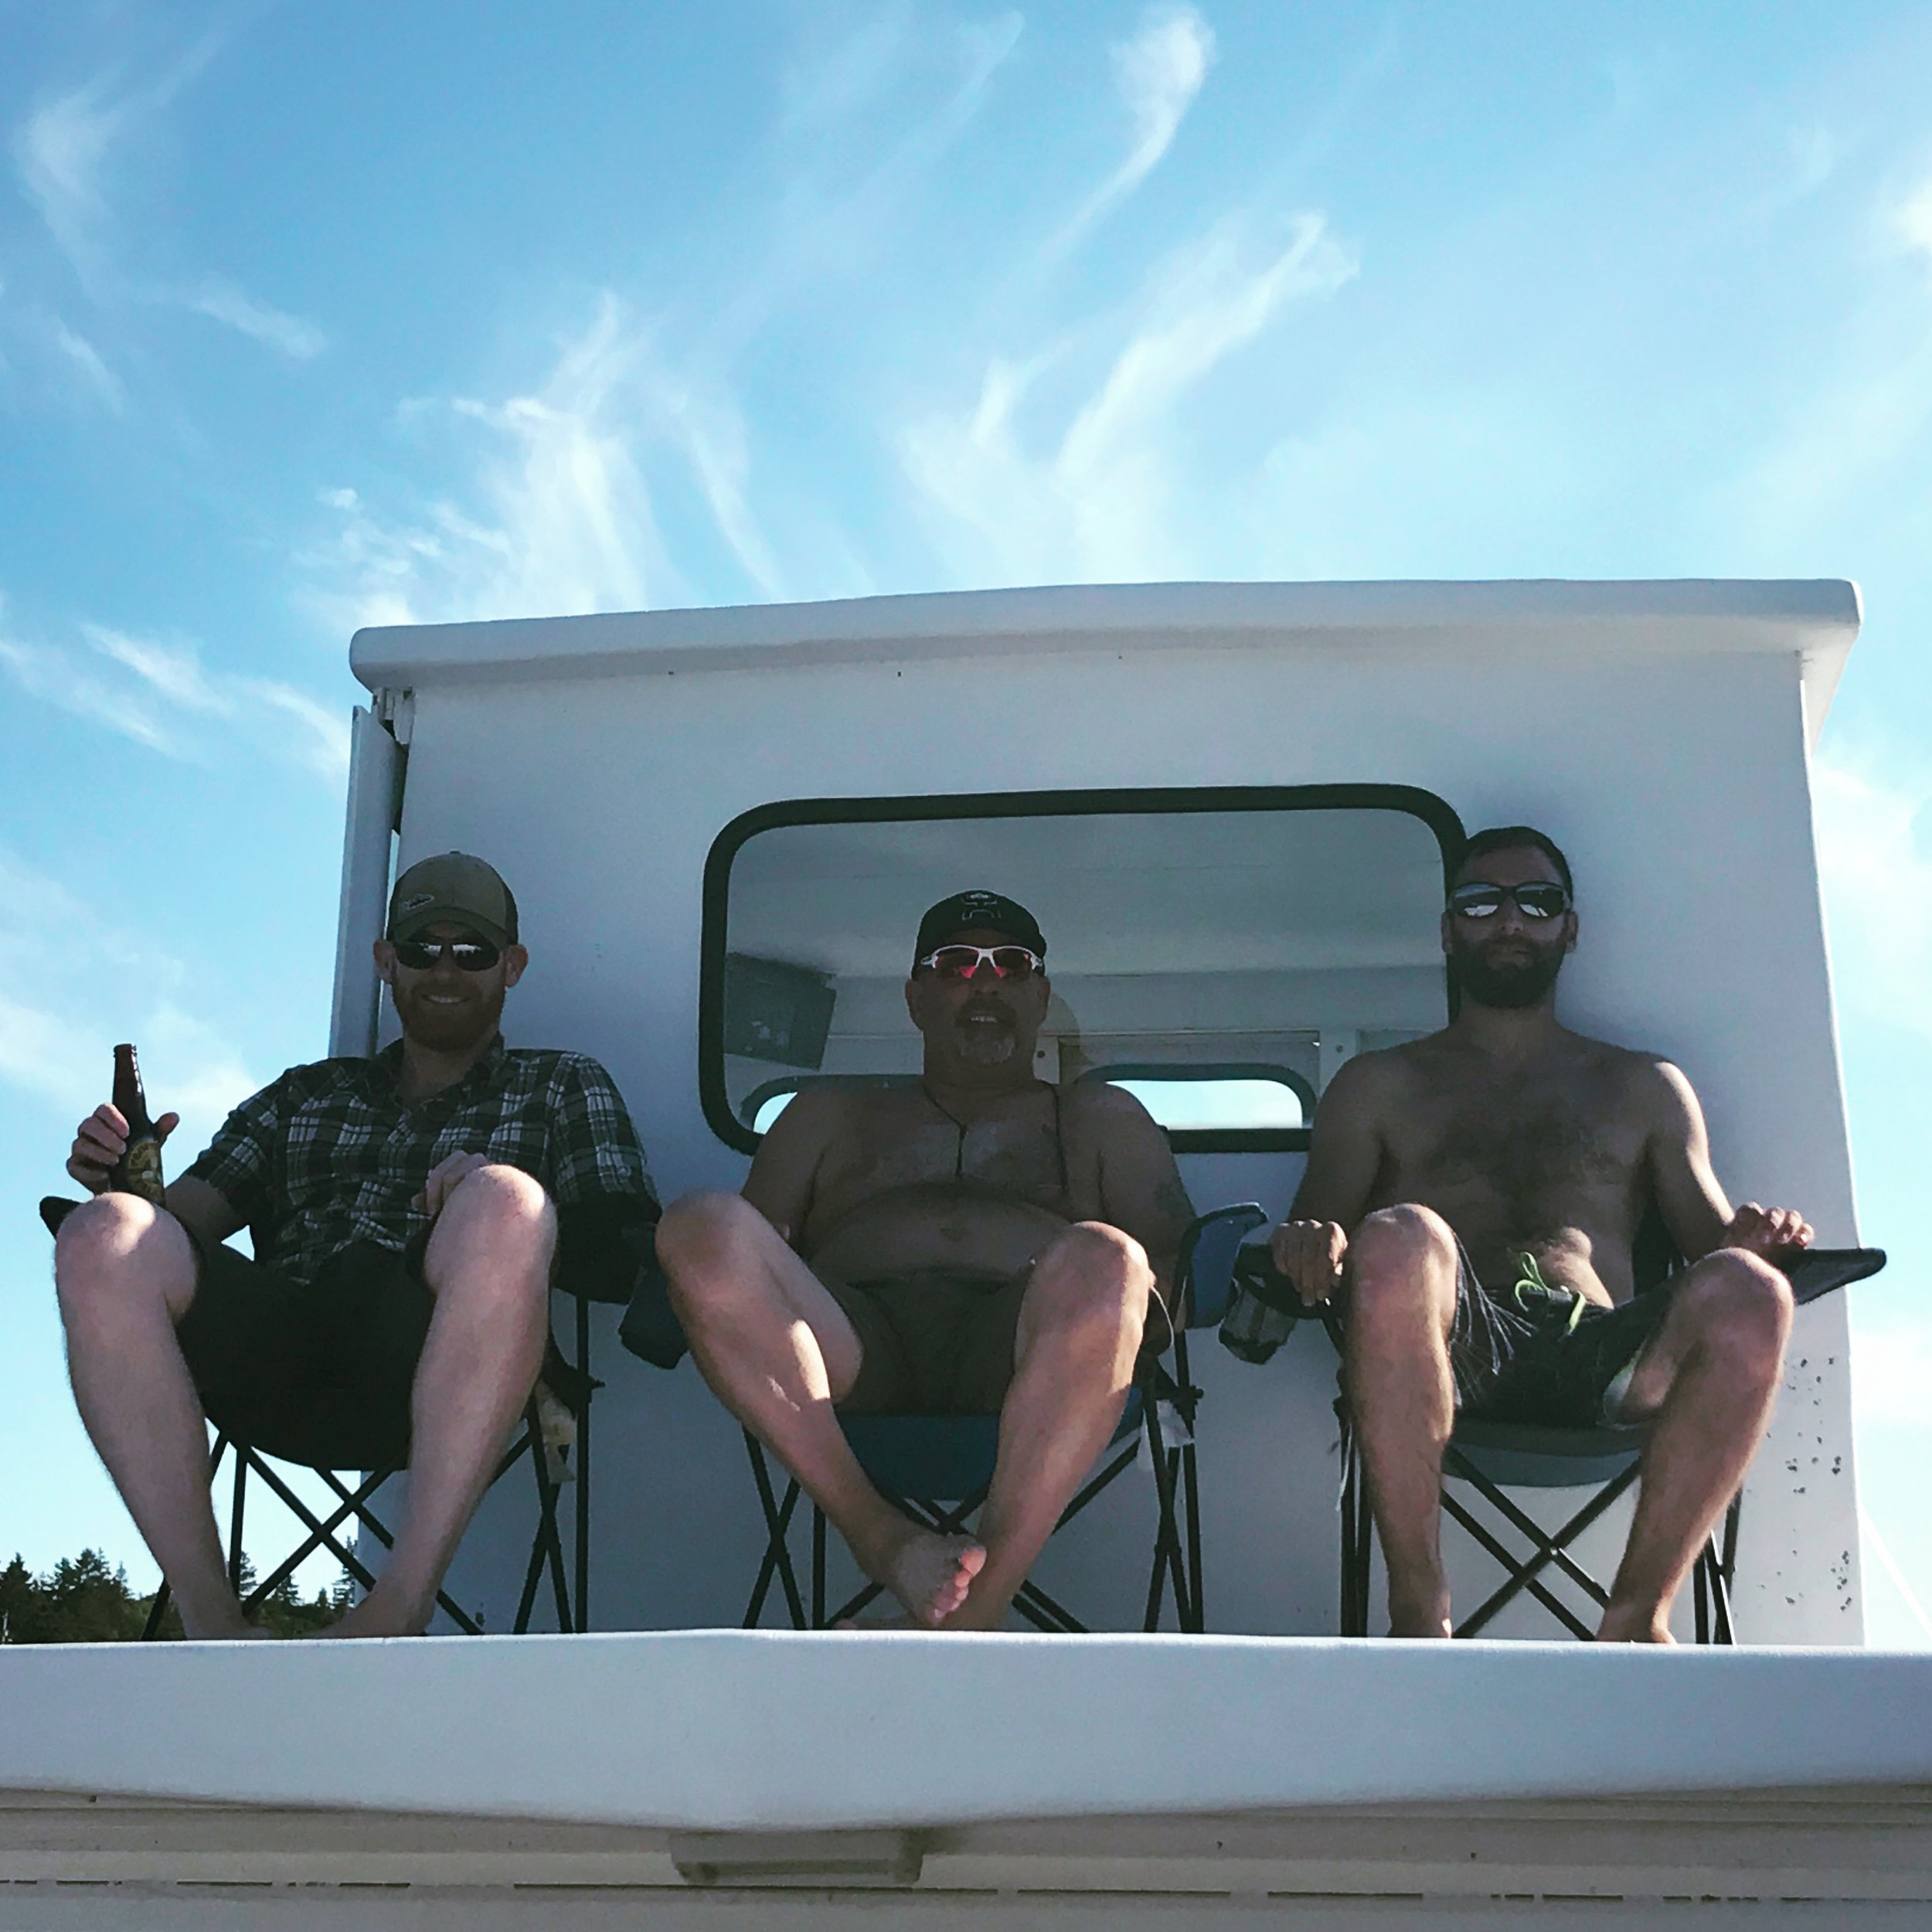 Enjoying a brew and a float with the homeboys...boatlife.